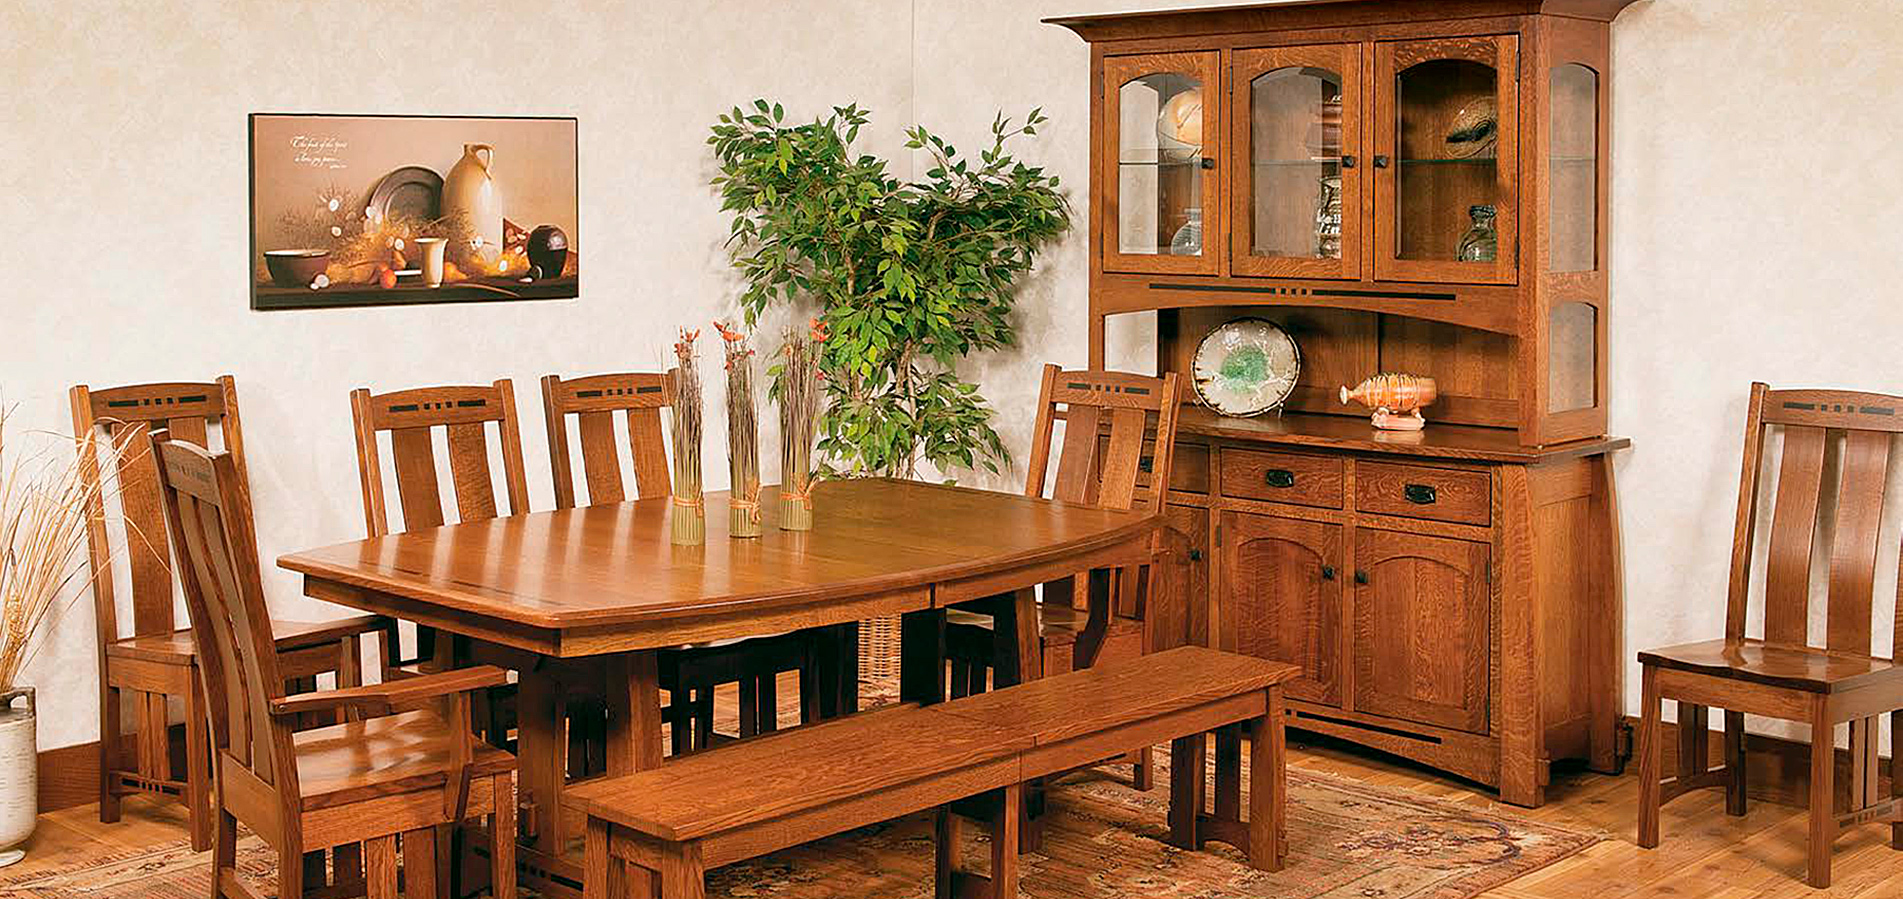 2017-west-point-woodworking-catalog-304-copy.jpg